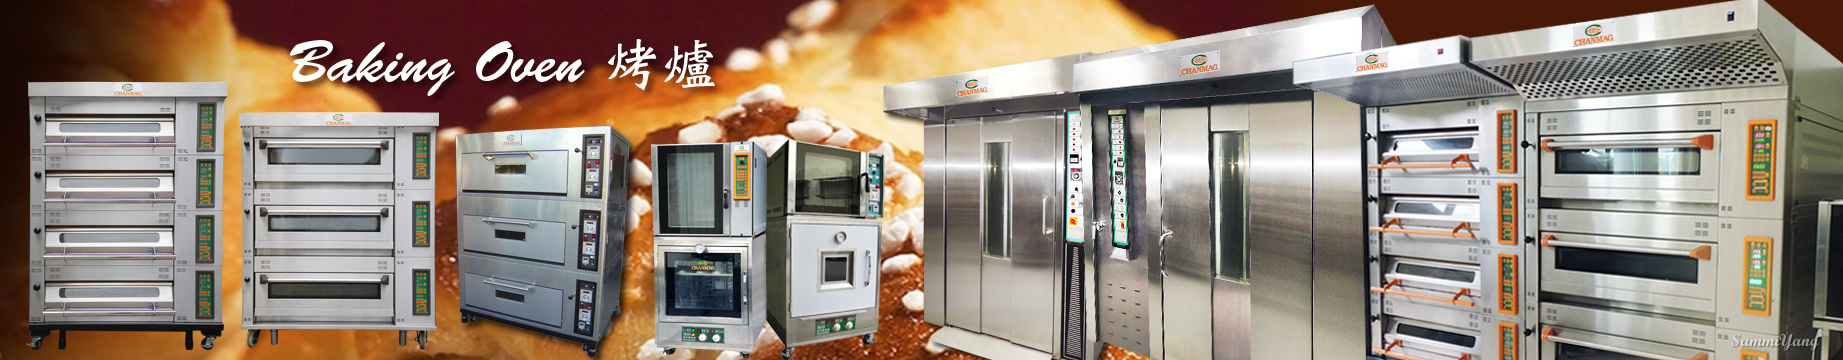 Baking Oven CHANMAG Bakery Machine